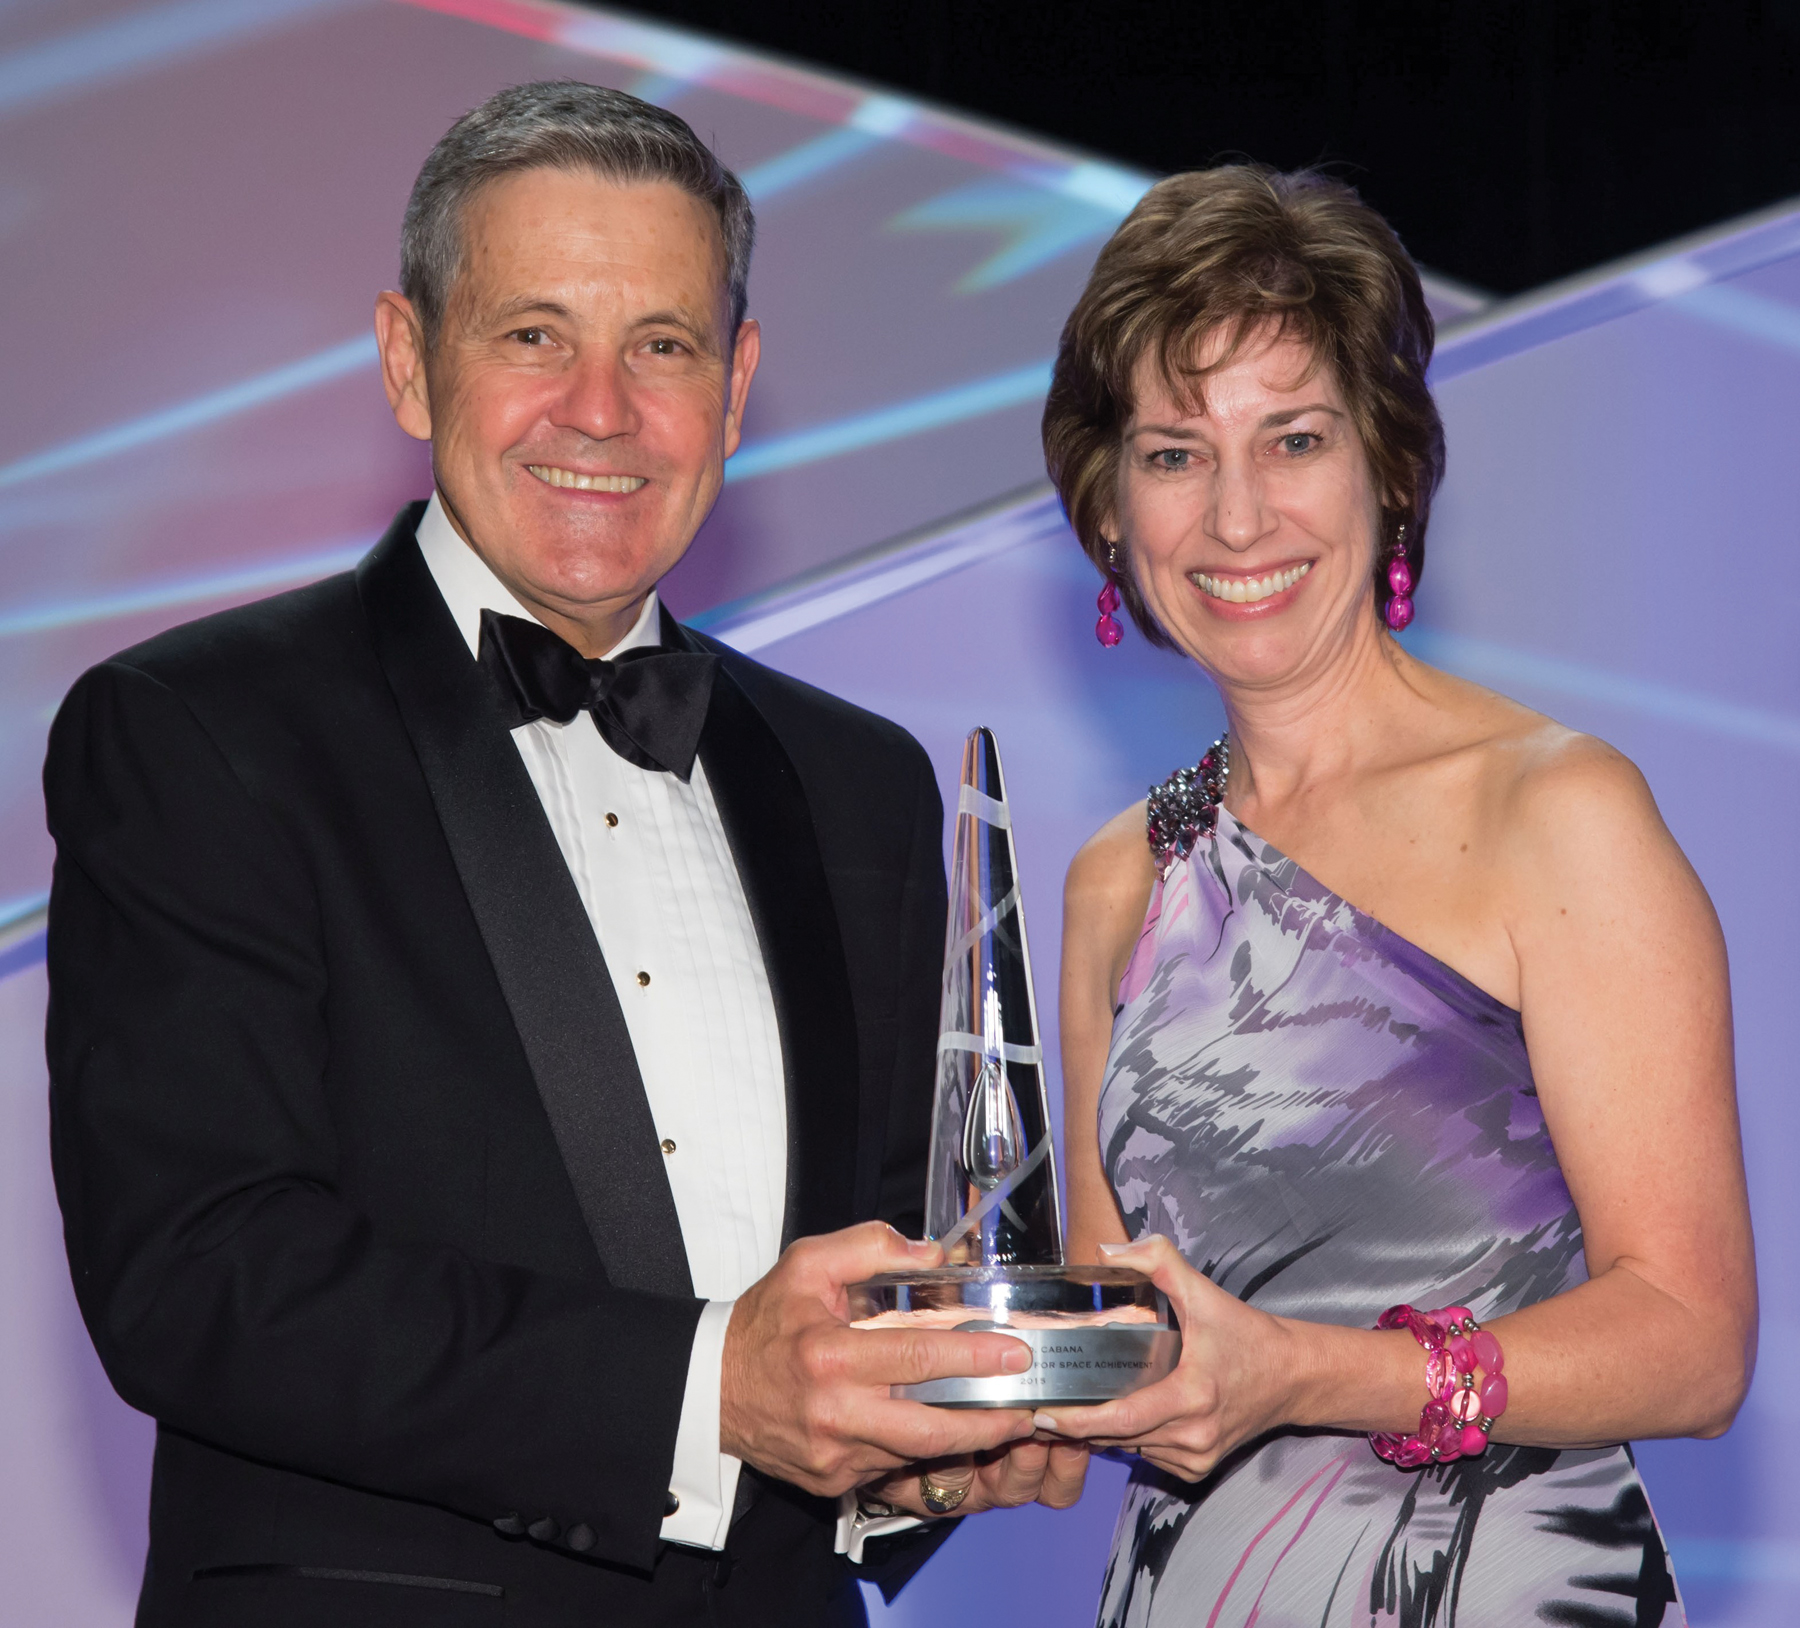 Johnson Space Center Director Dr. Ellen Ochoa presents the coveted National Space Trophy to Kennedy Space Center Director Robert Cabana during ceremonies at the Rotary National Award for Space Achievement Foundation's 29th annual Space Gala at the Downtown Houston Hyatt Regency. Photo: NASA